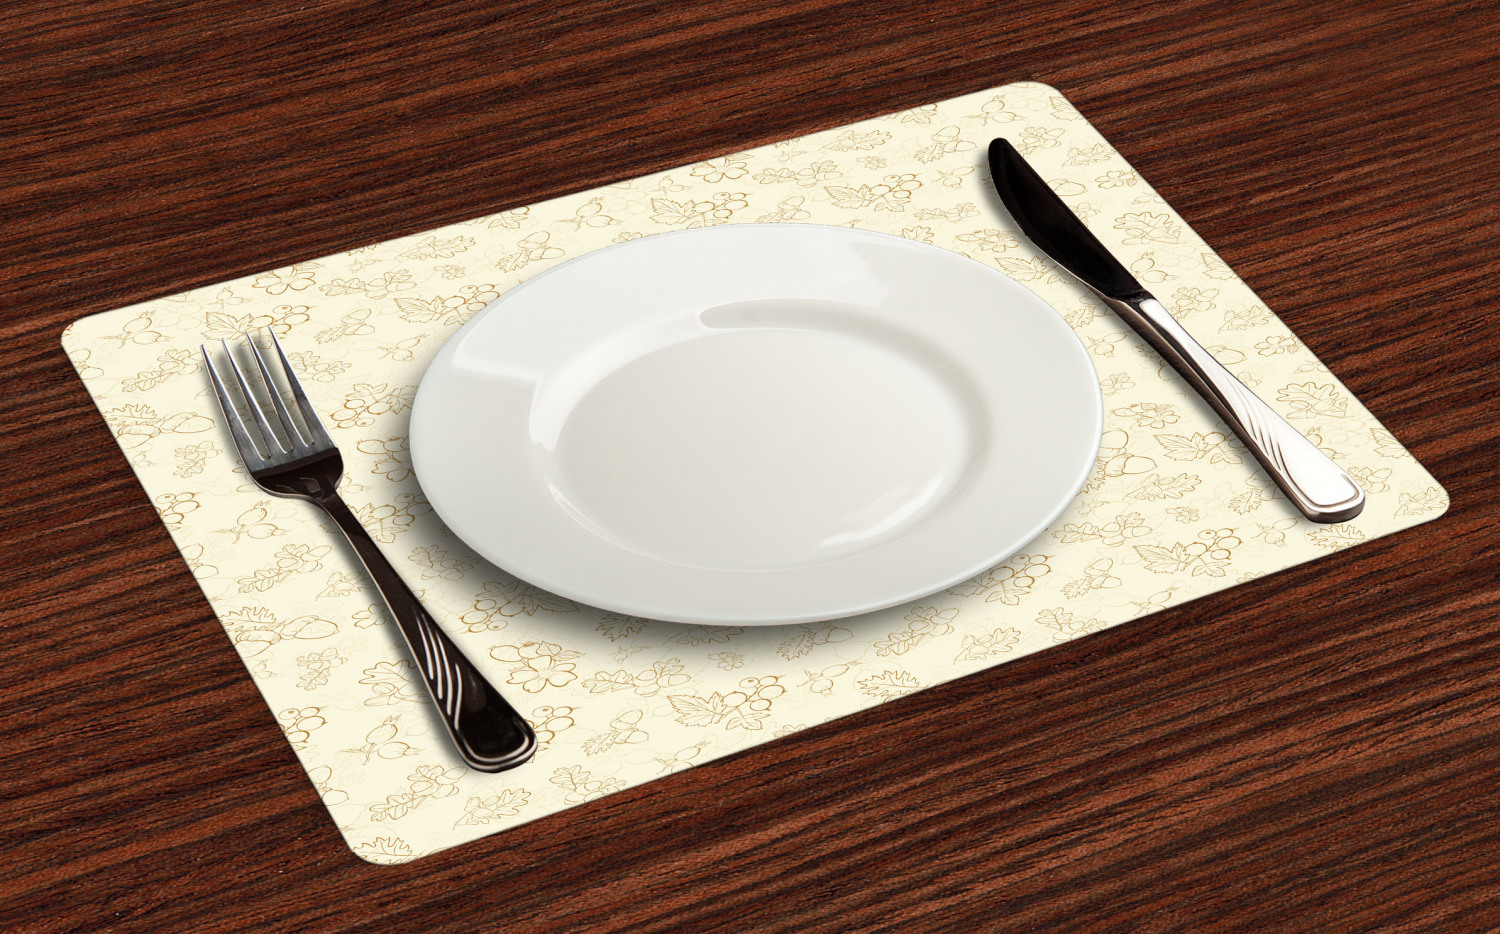 Ambesonne-Fabric-Place-Mats-Set-of-4-Placemats-for-Dining-Room-and-Kitchen-Table thumbnail 101